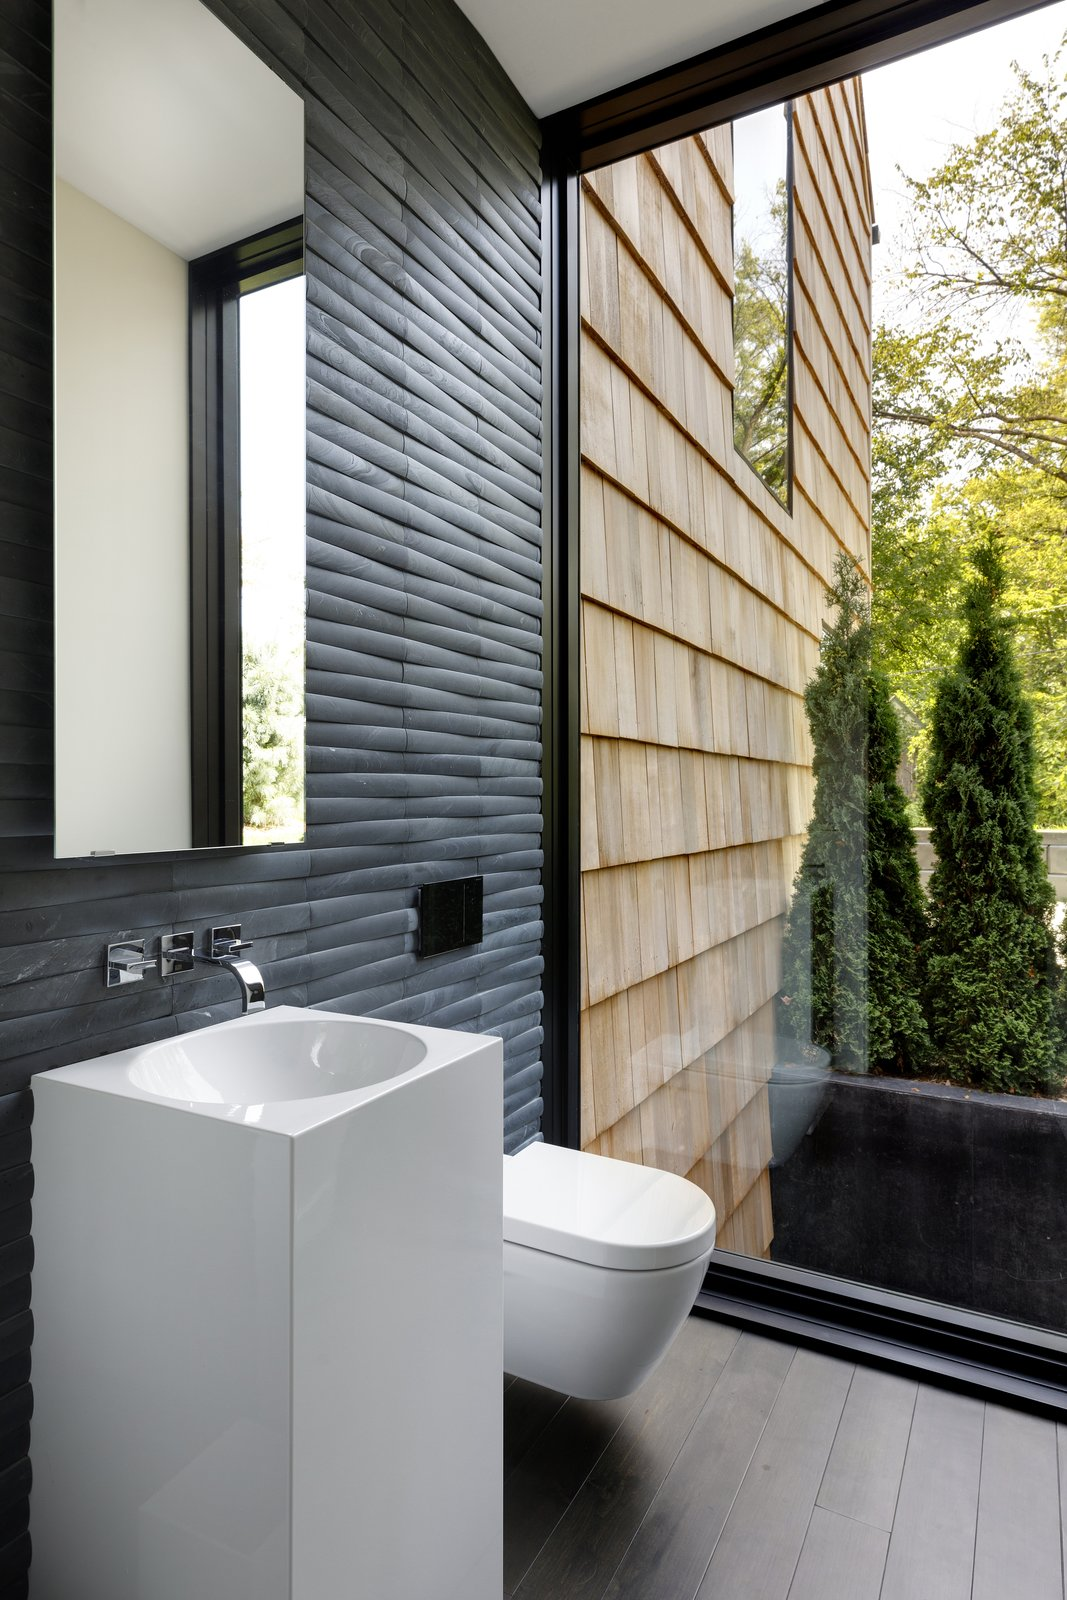 Bath Room, Dark Hardwood Floor, and Stone Tile Wall  Photo 9 of 15 in What's the Best Way to Save Space in a Small Bathroom? from Huntington Residence